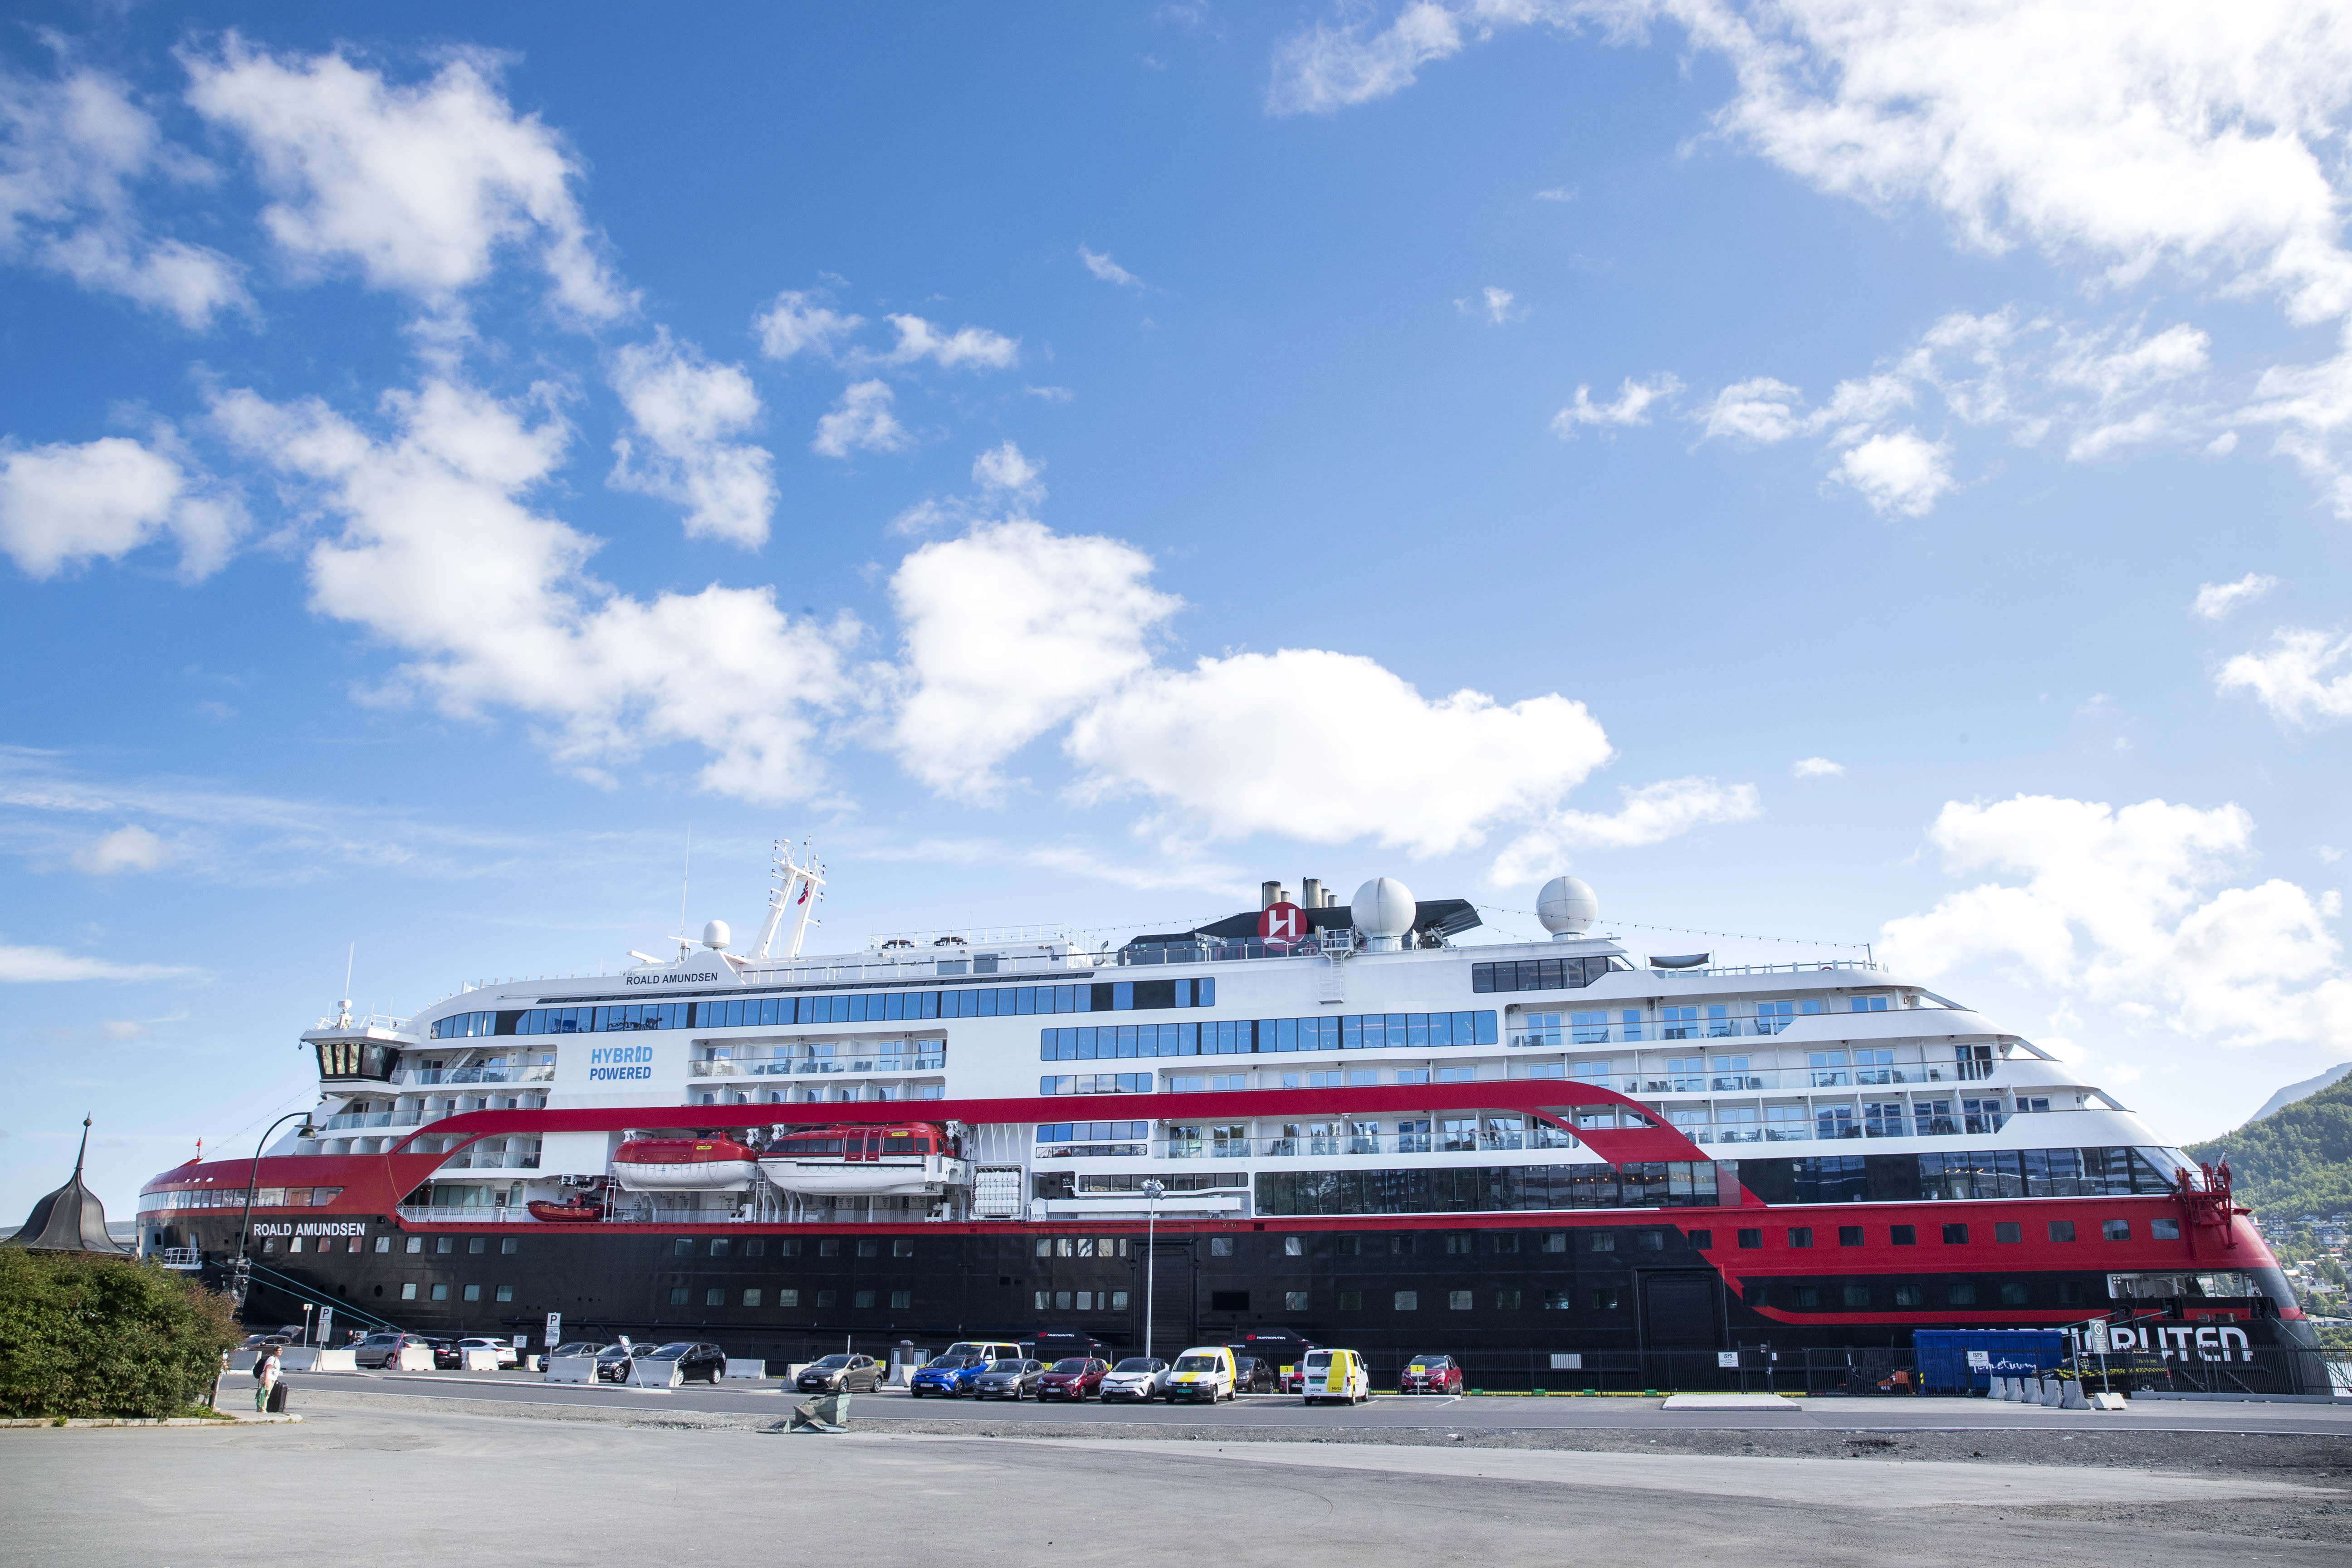 A view of the Hurtigruten's vessel MS Roald Amundsen, docked in Tromso, Norway, Sunday, Aug. 2, 2020. Over 30 crew members and an unconfirmed number of passengers have so far tested positive for the coronavirus after two international cruises which resumed operation recently, since the outbreak of the coronavirus pandemic. (Terje Pedersen/NTB scanpix via AP)